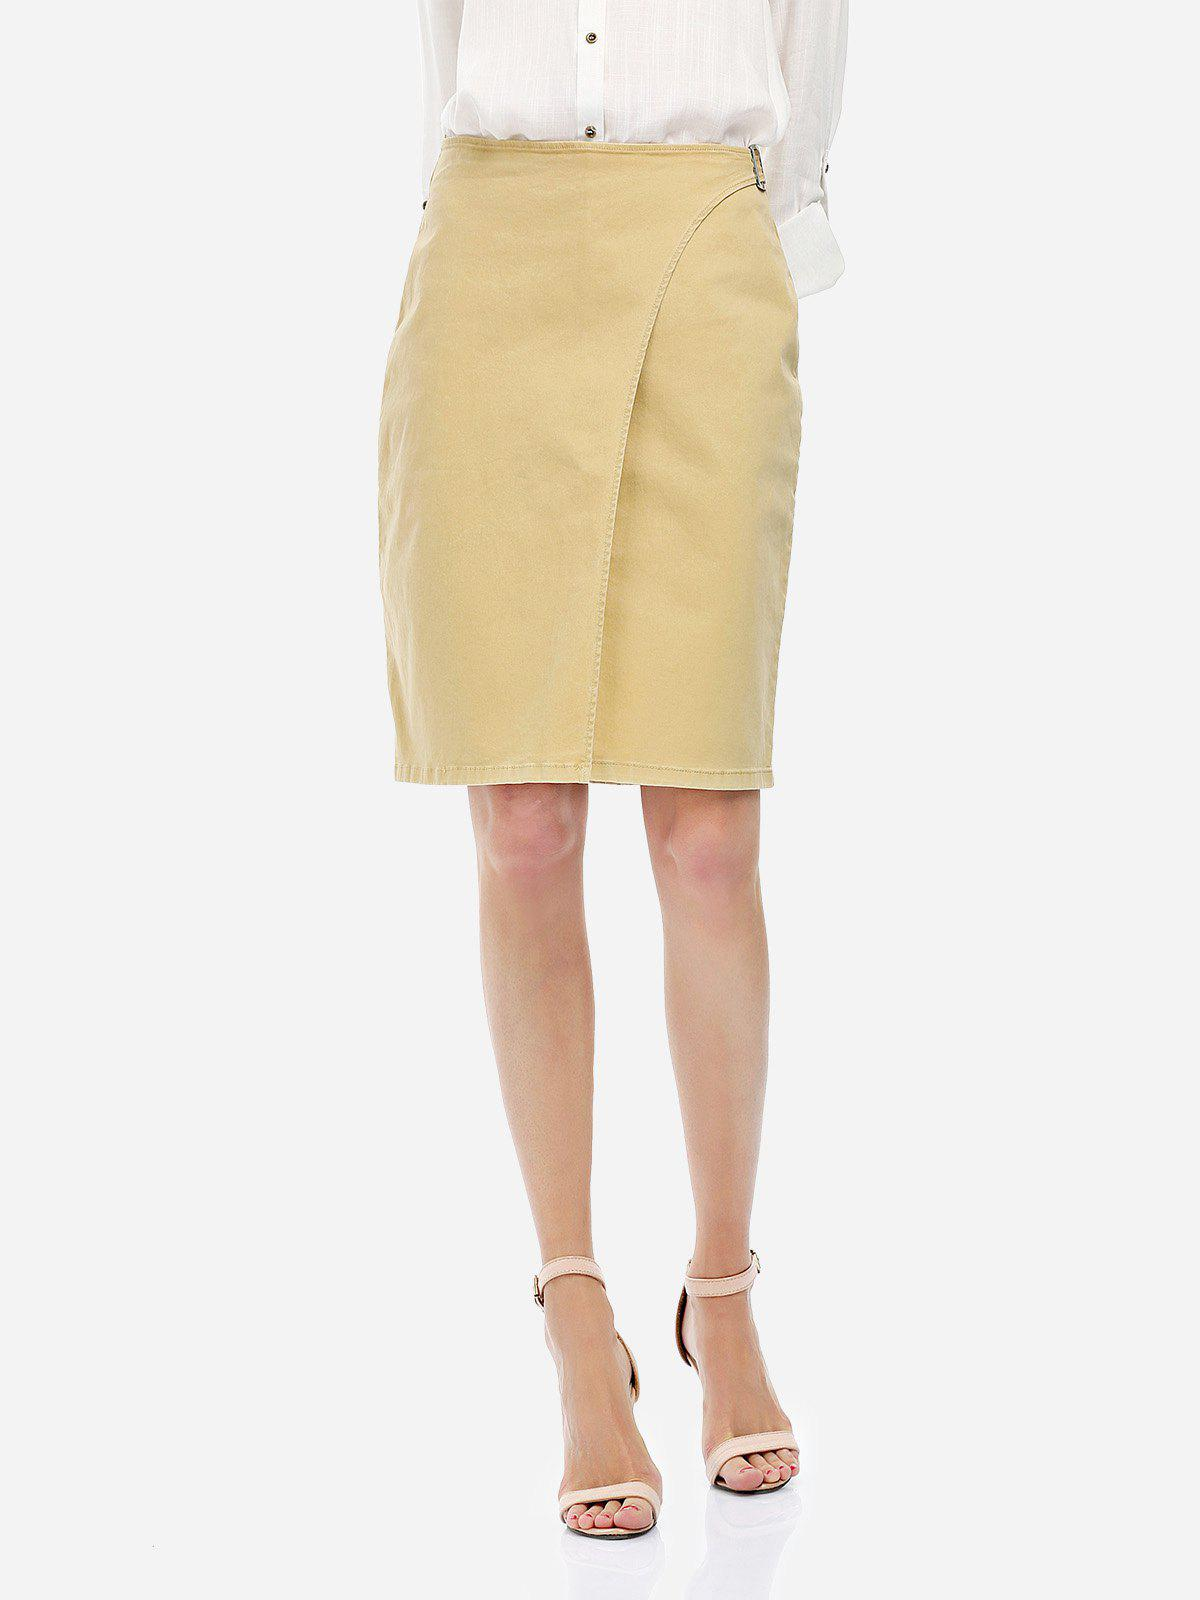 ZAN.STYLE High Rise A-line Skirt - KHAKI XL